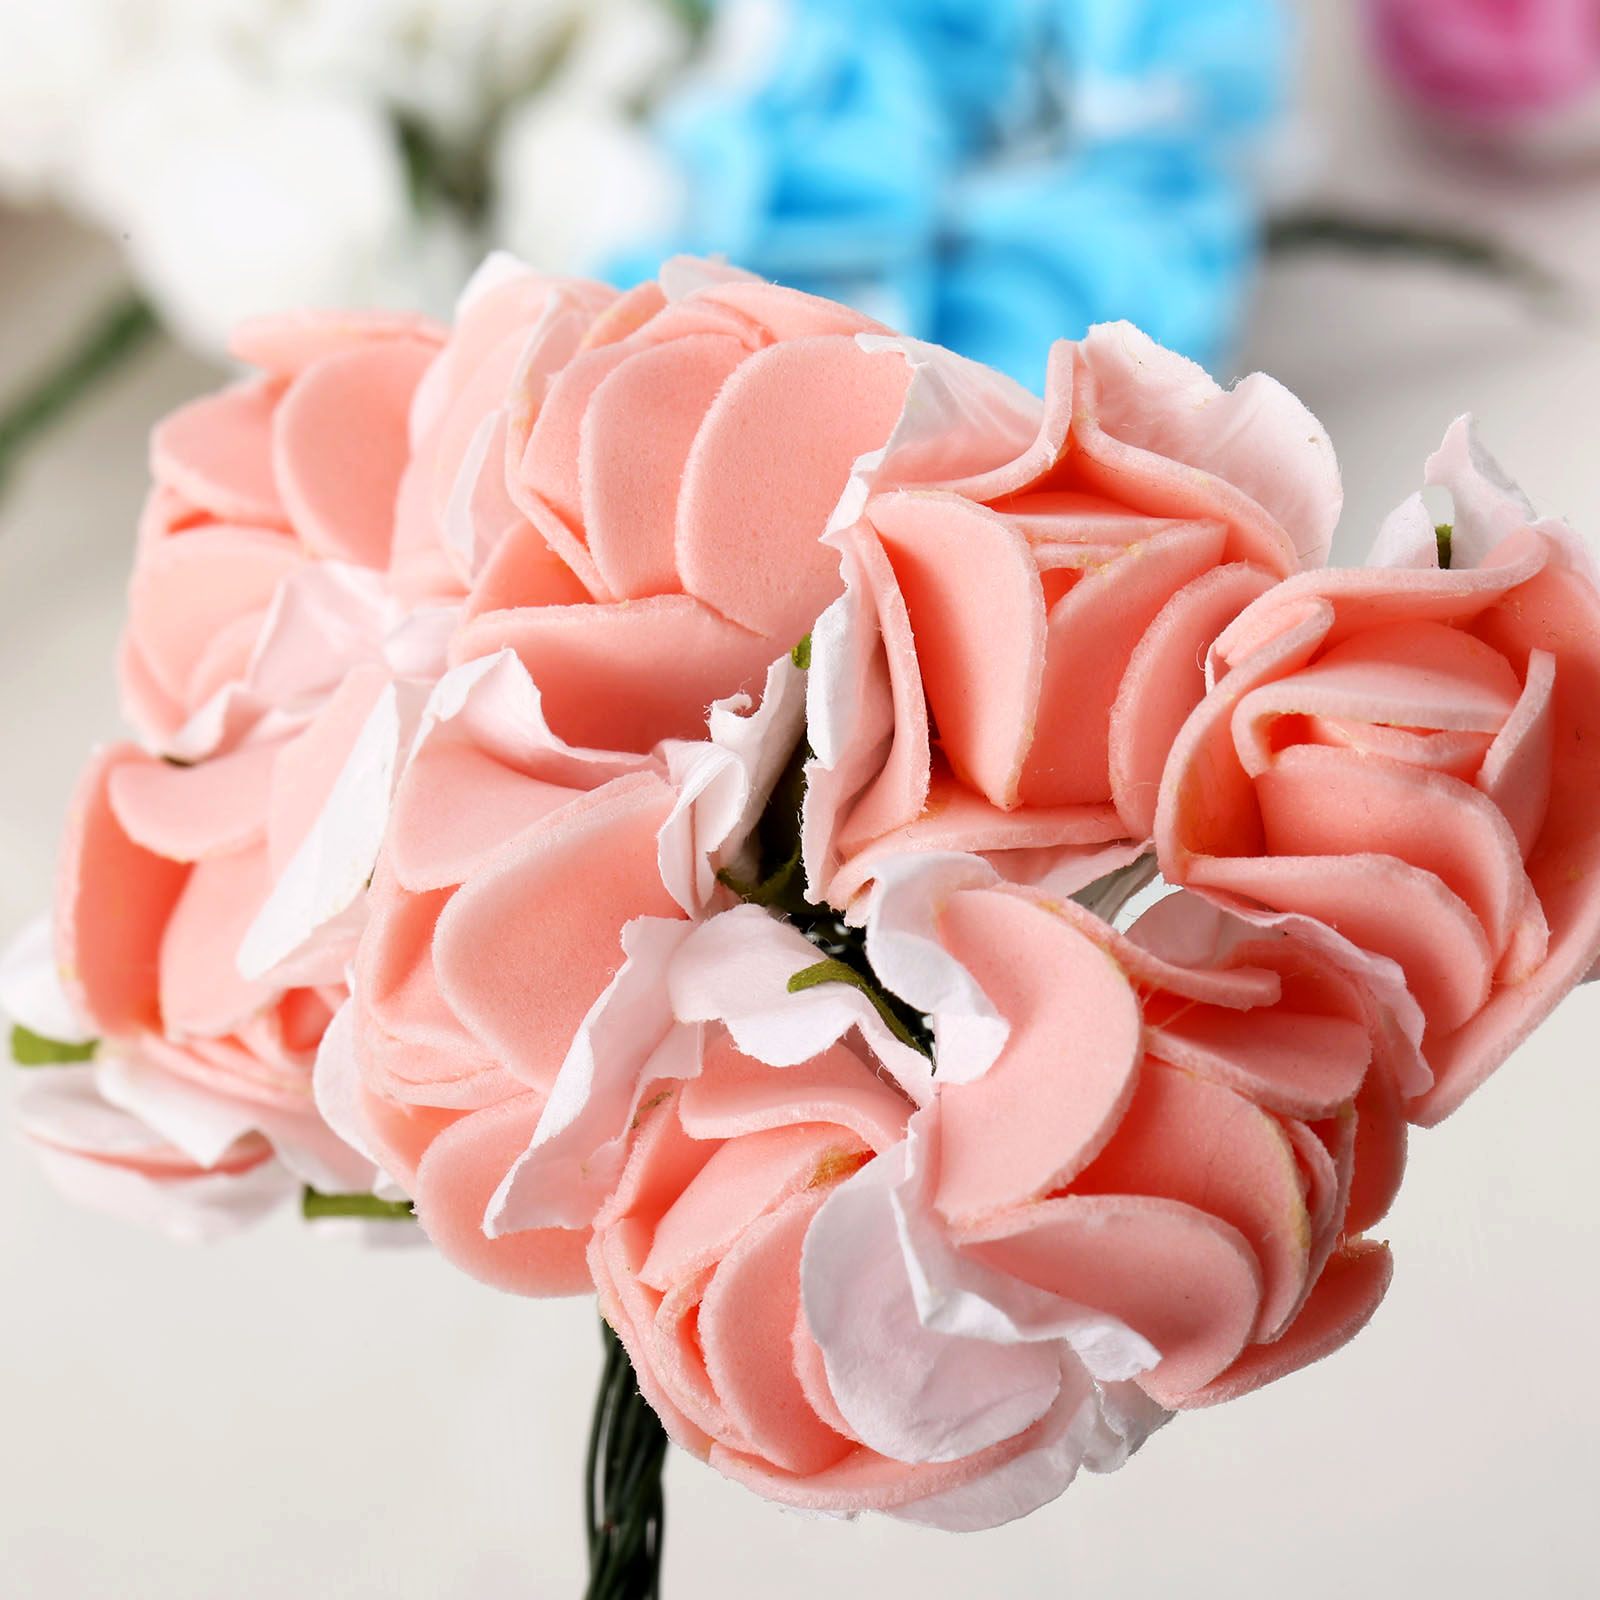 Artificial Strawberry Flower Bouquet Flowers For Home Diy Wreath